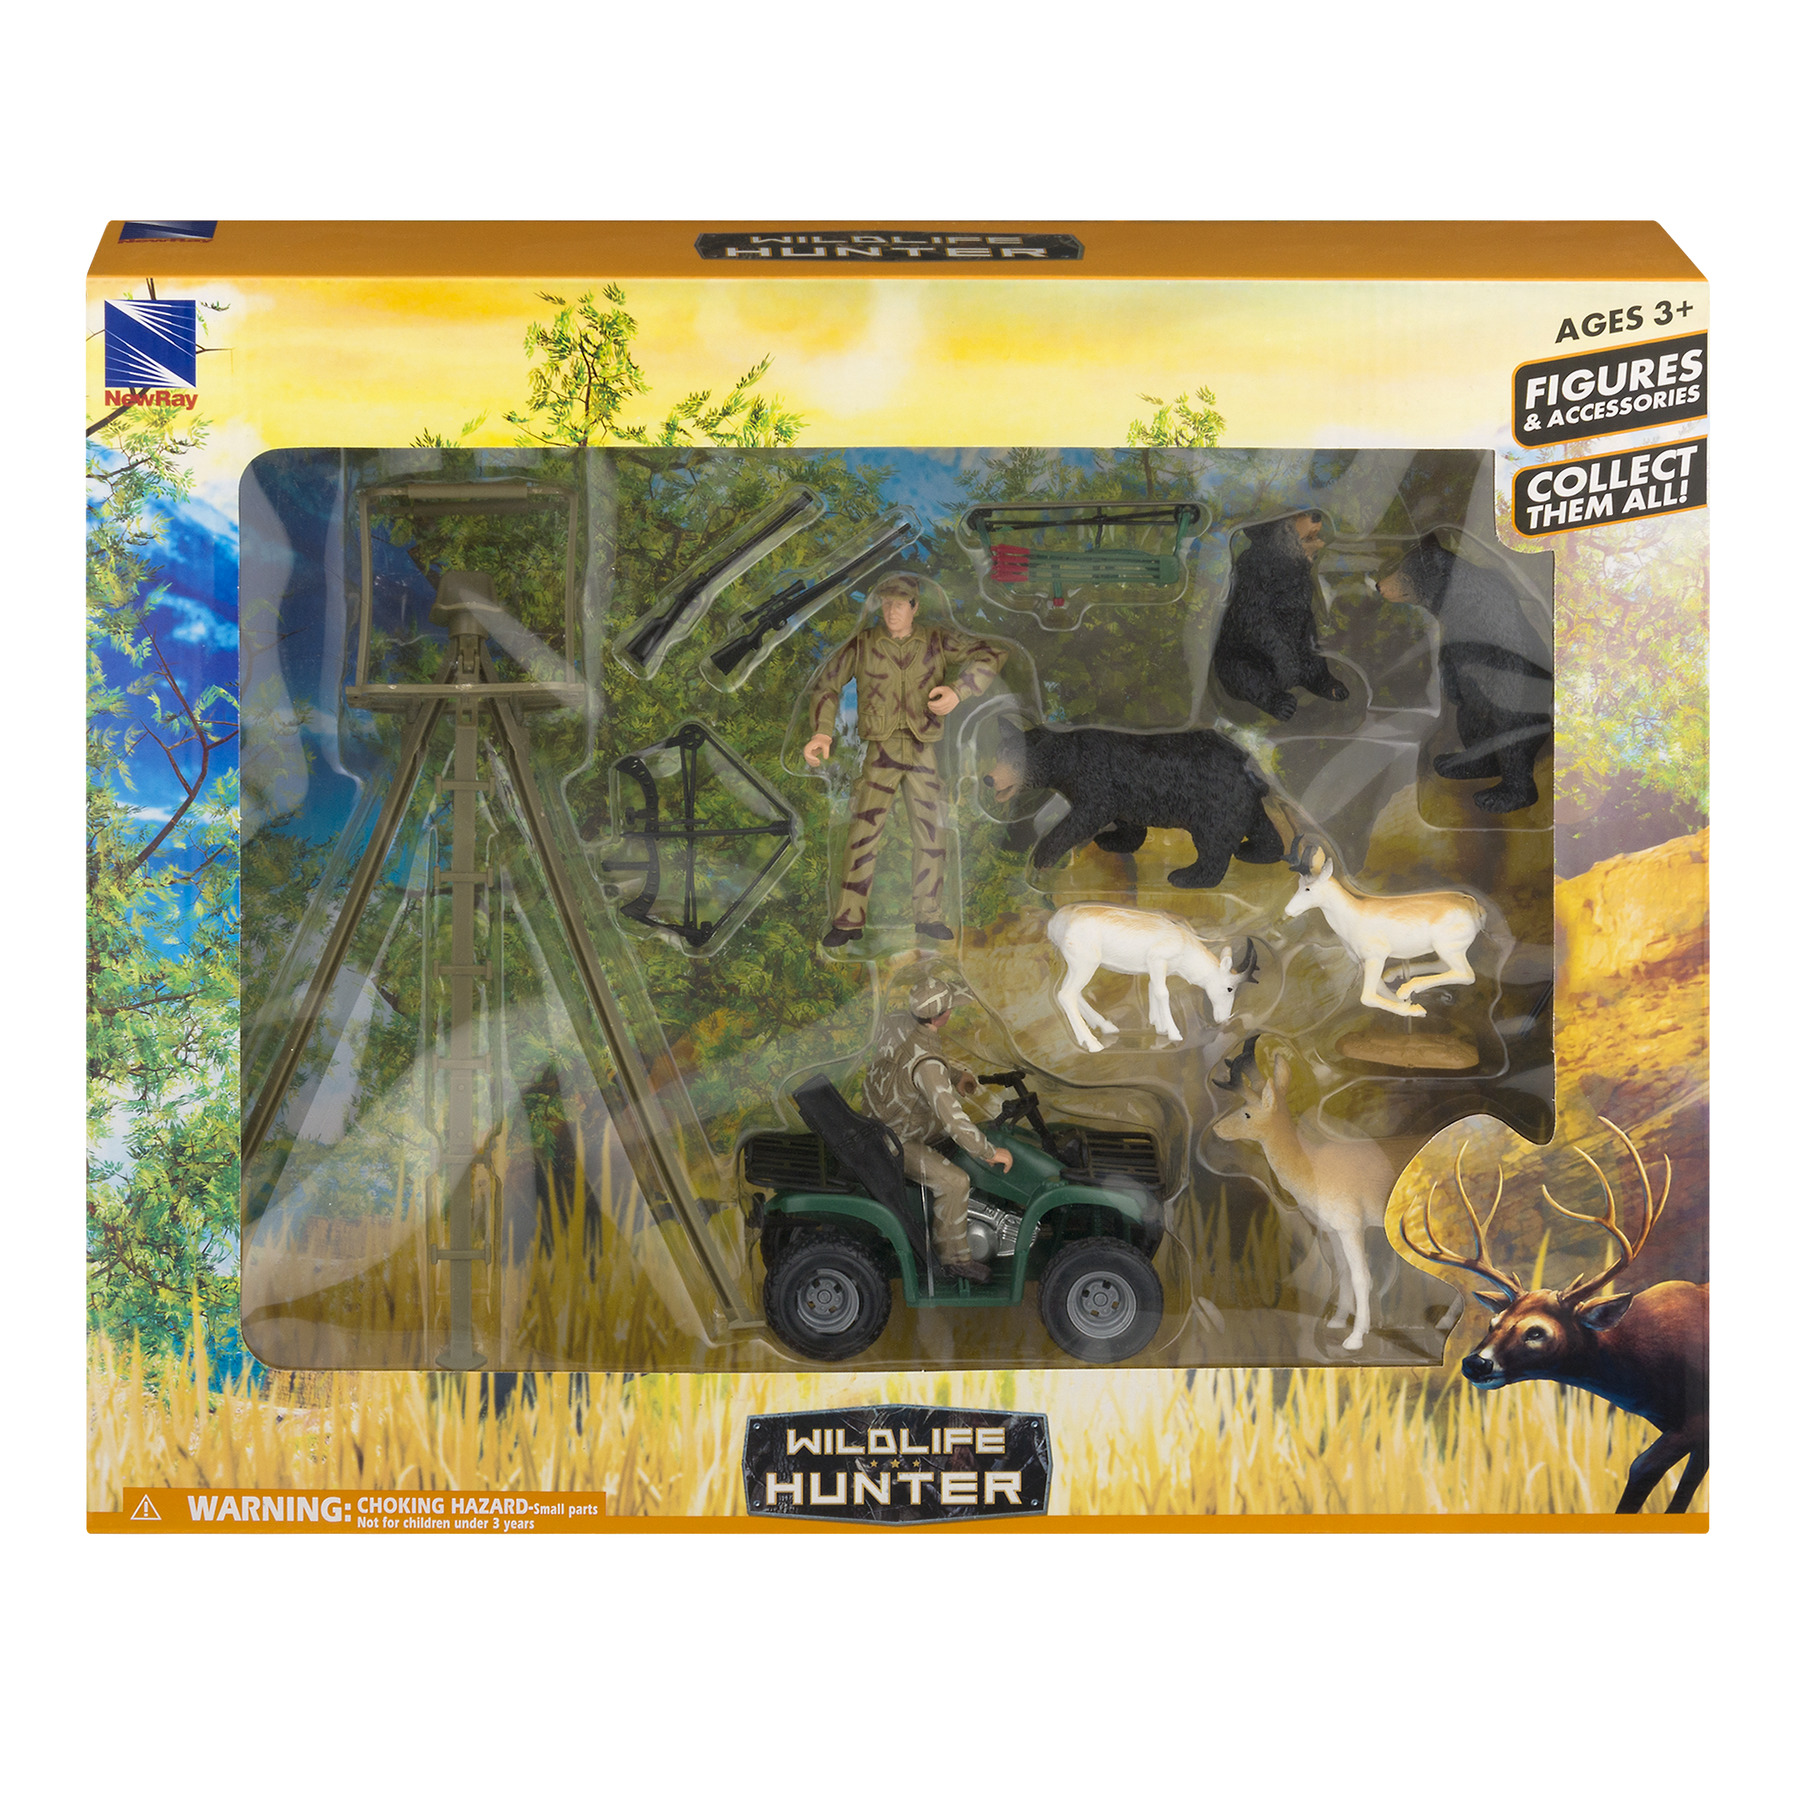 Wildlife Hunter Figures & Accessories, 1.0 CT